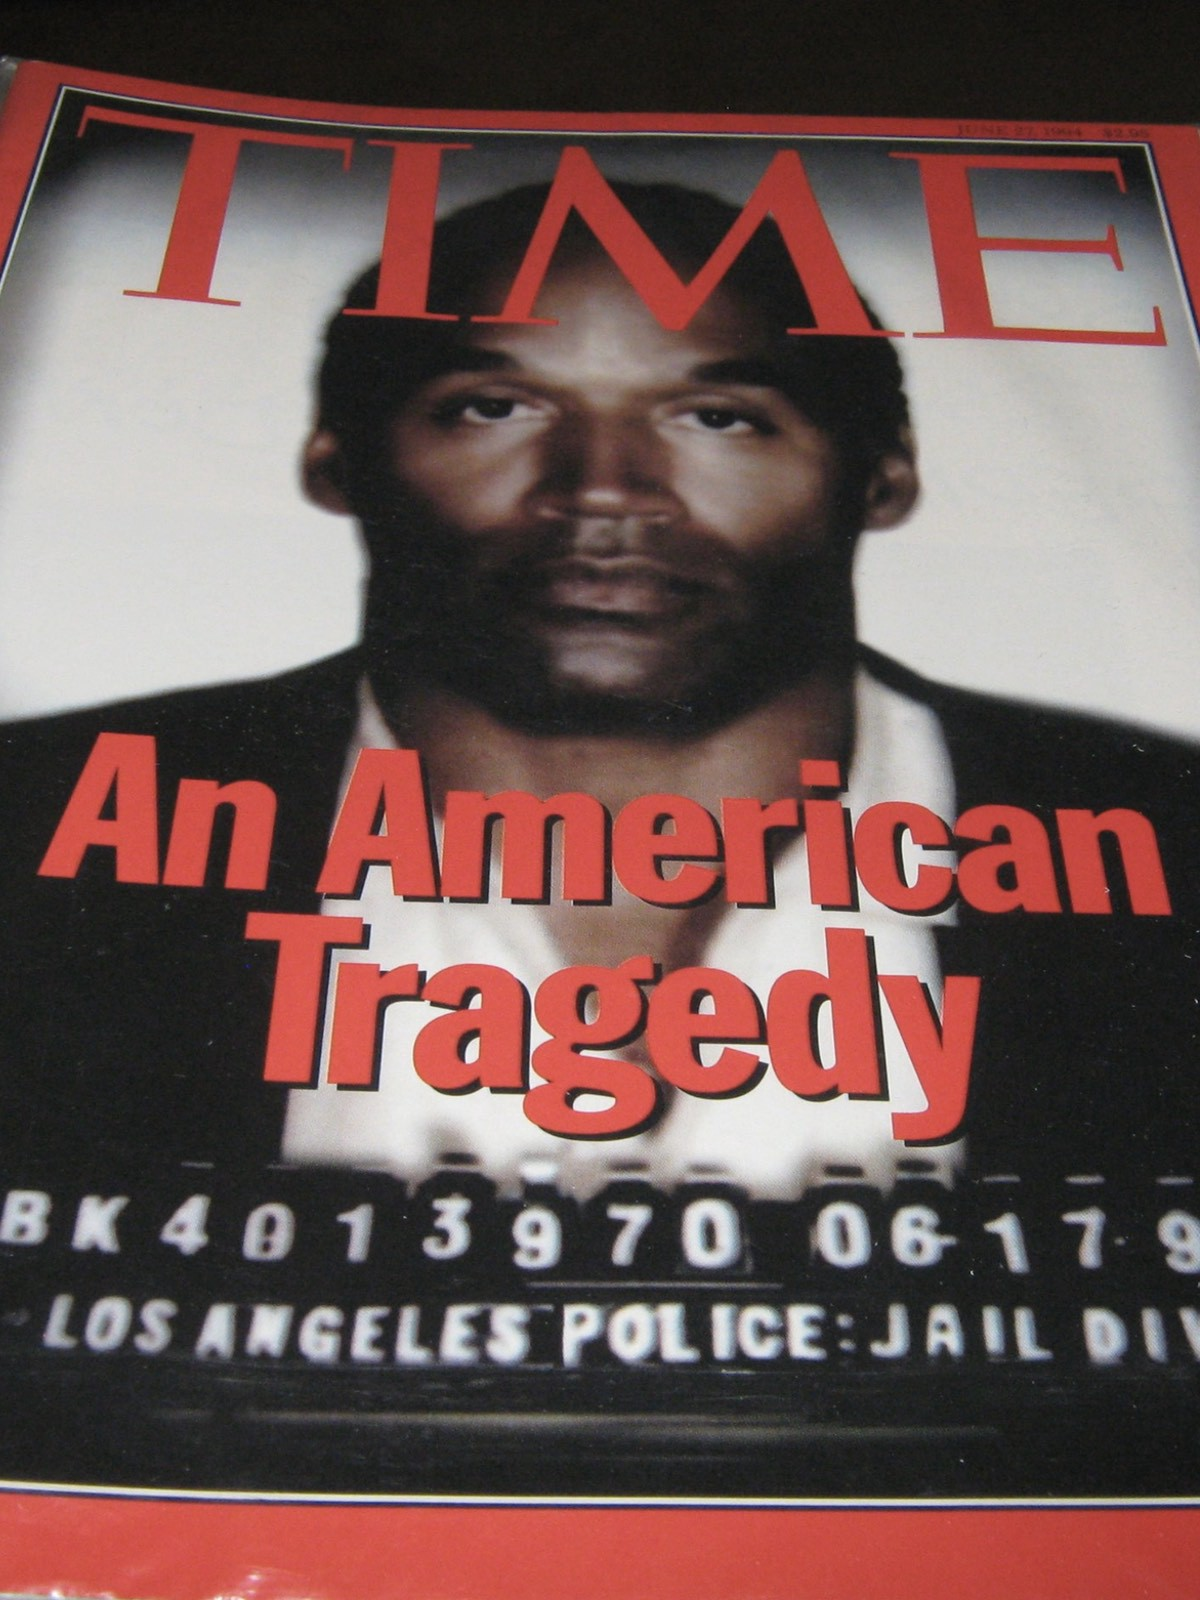 Time Magazine darkened Simpson's image to emphasise his guilt.